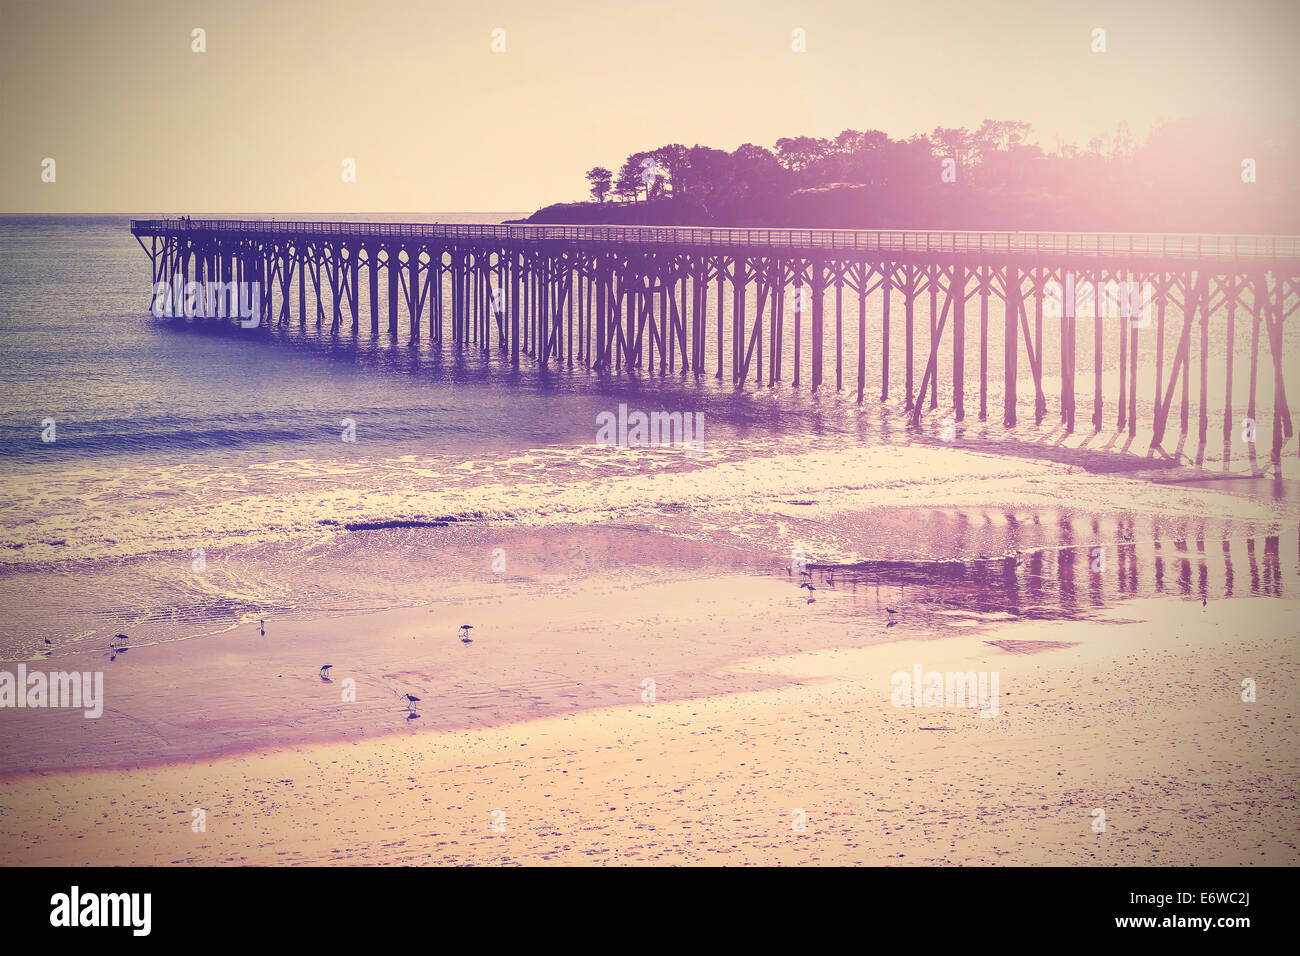 Vintage wood bridge at beach sunset, California, USA. - Stock Image